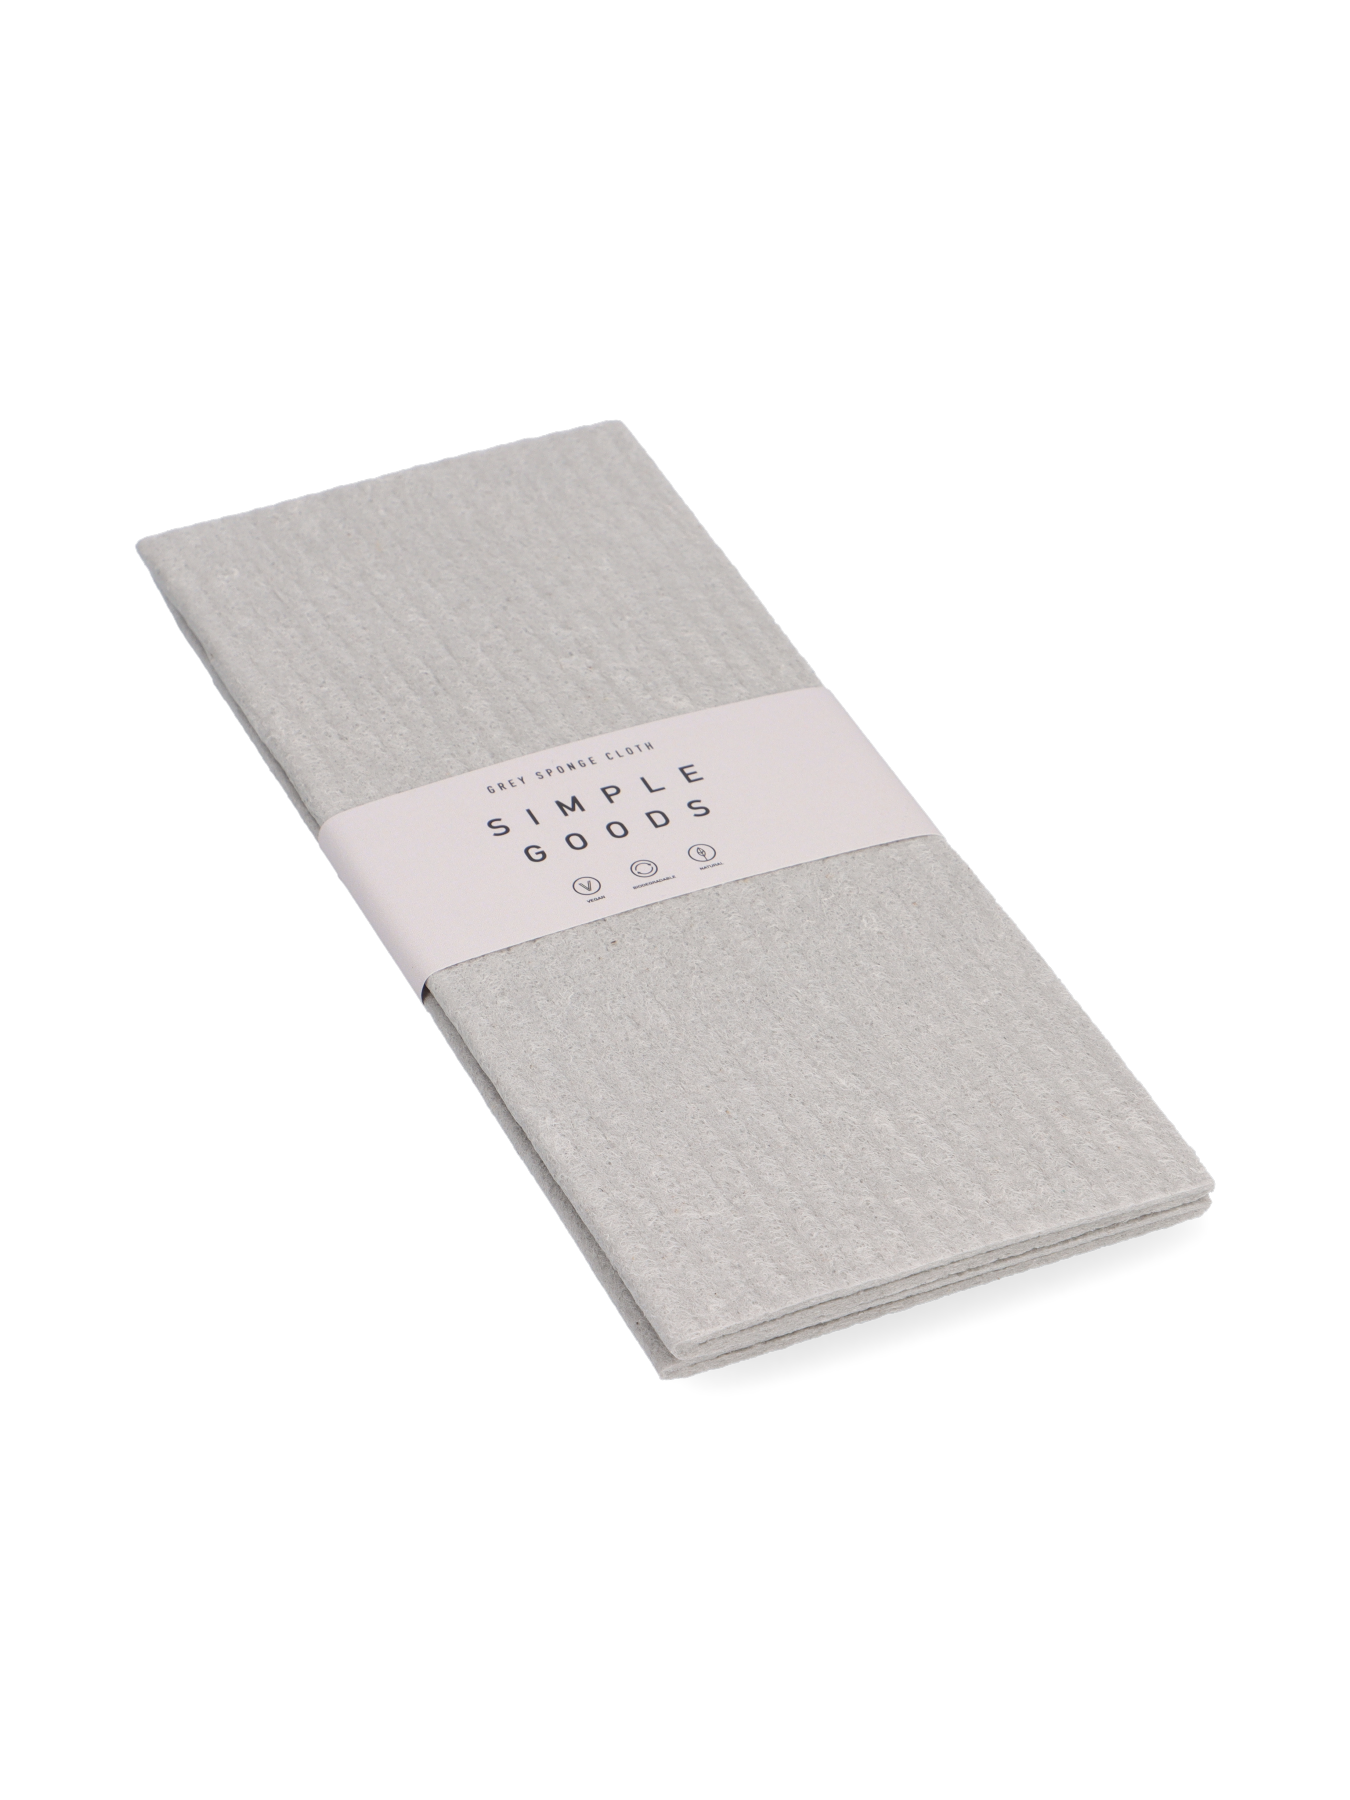 Simple Goods - Sponge Cloth, Grey